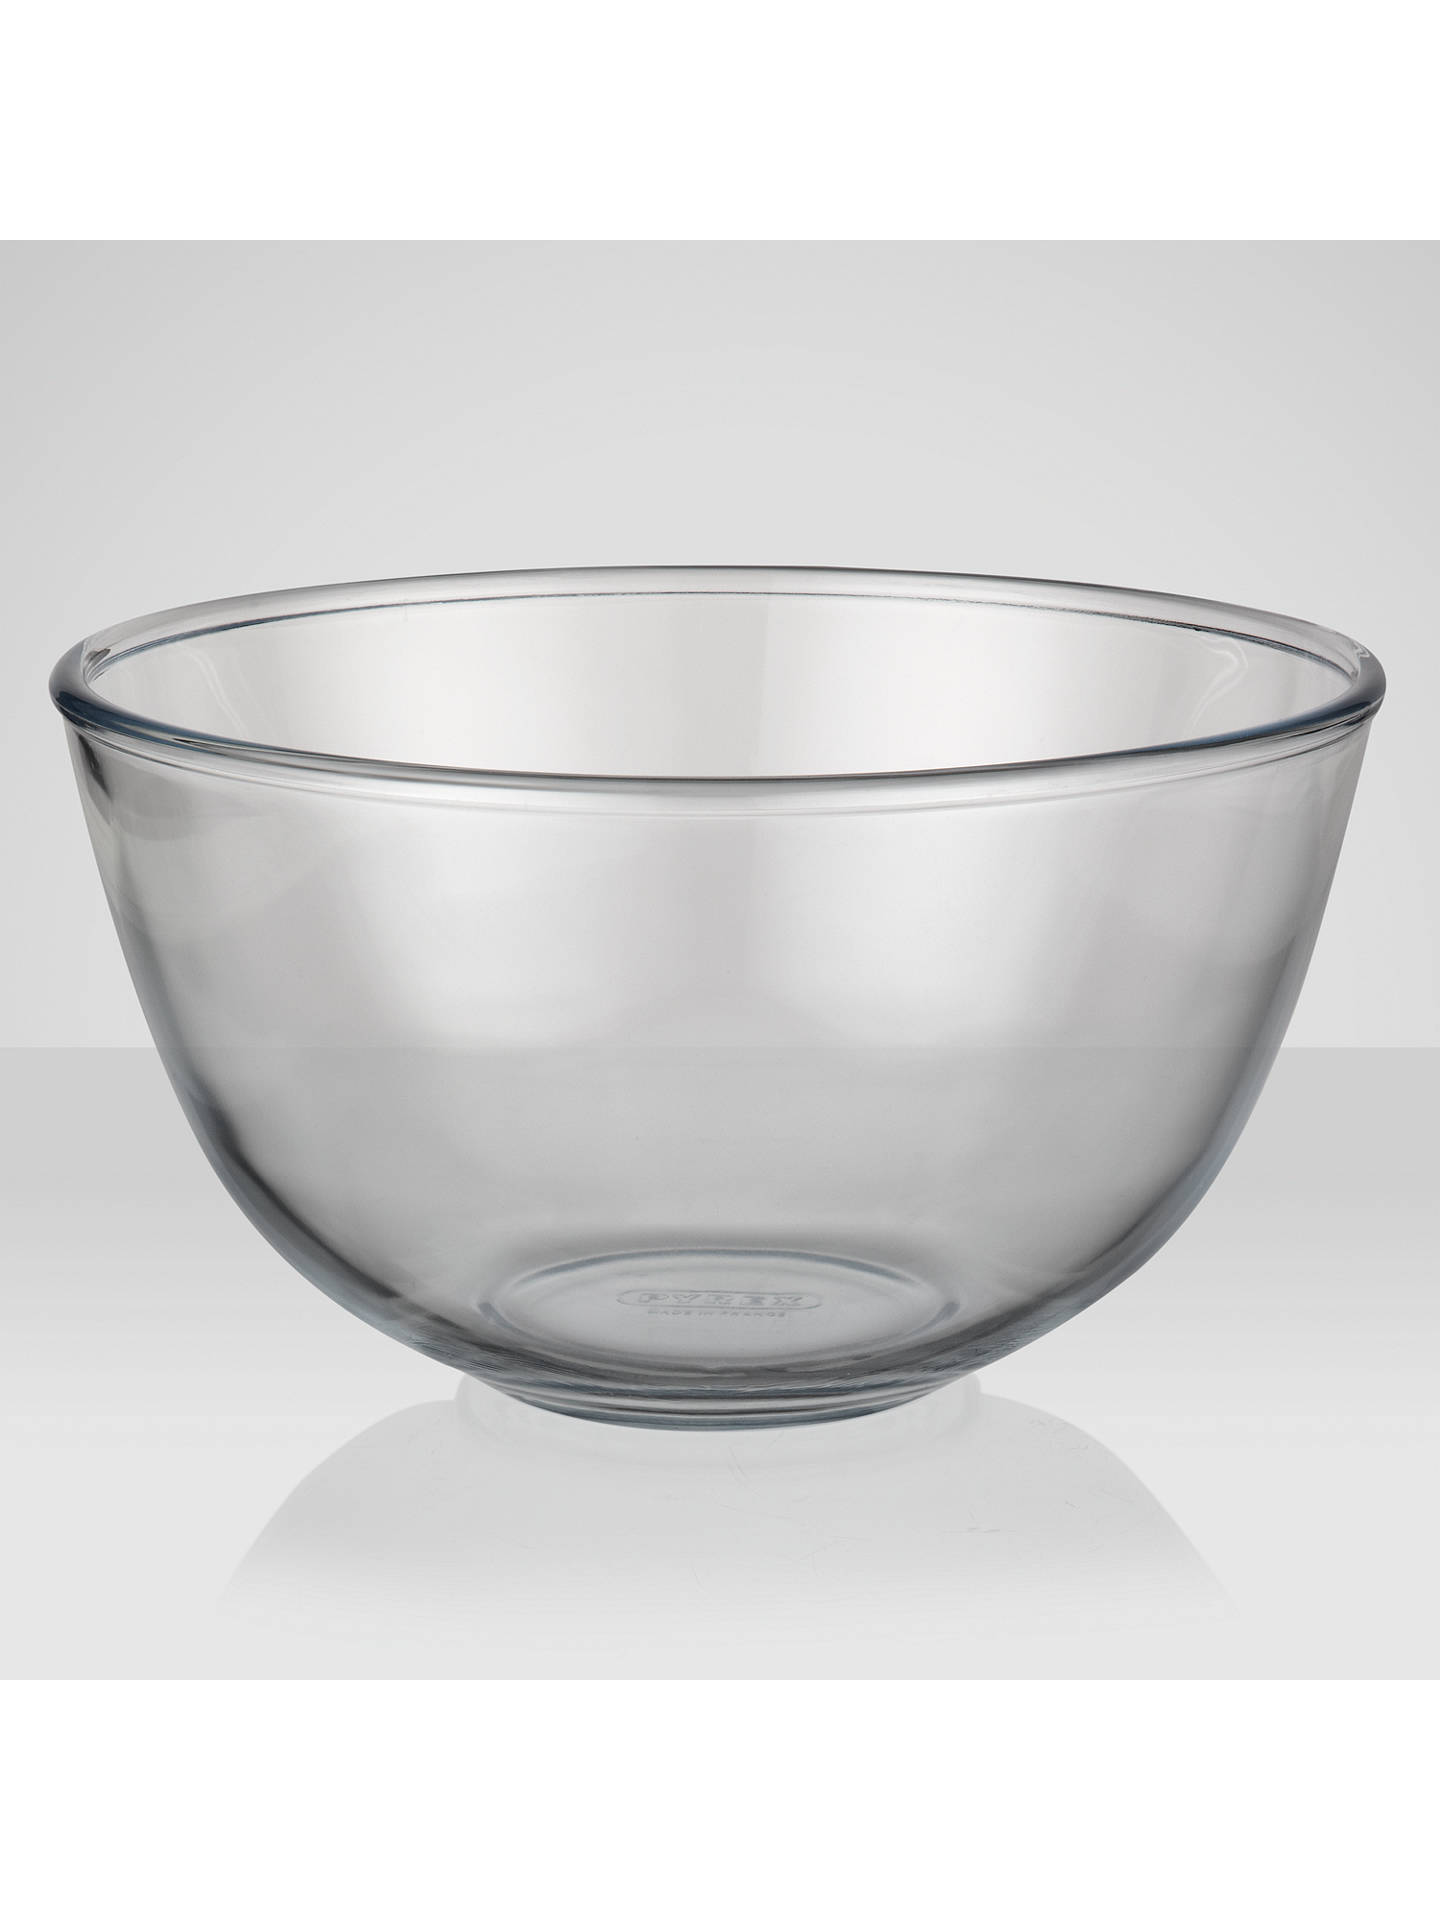 BuyPyrex 3L Glass Mixing Bowl Online at johnlewis.com